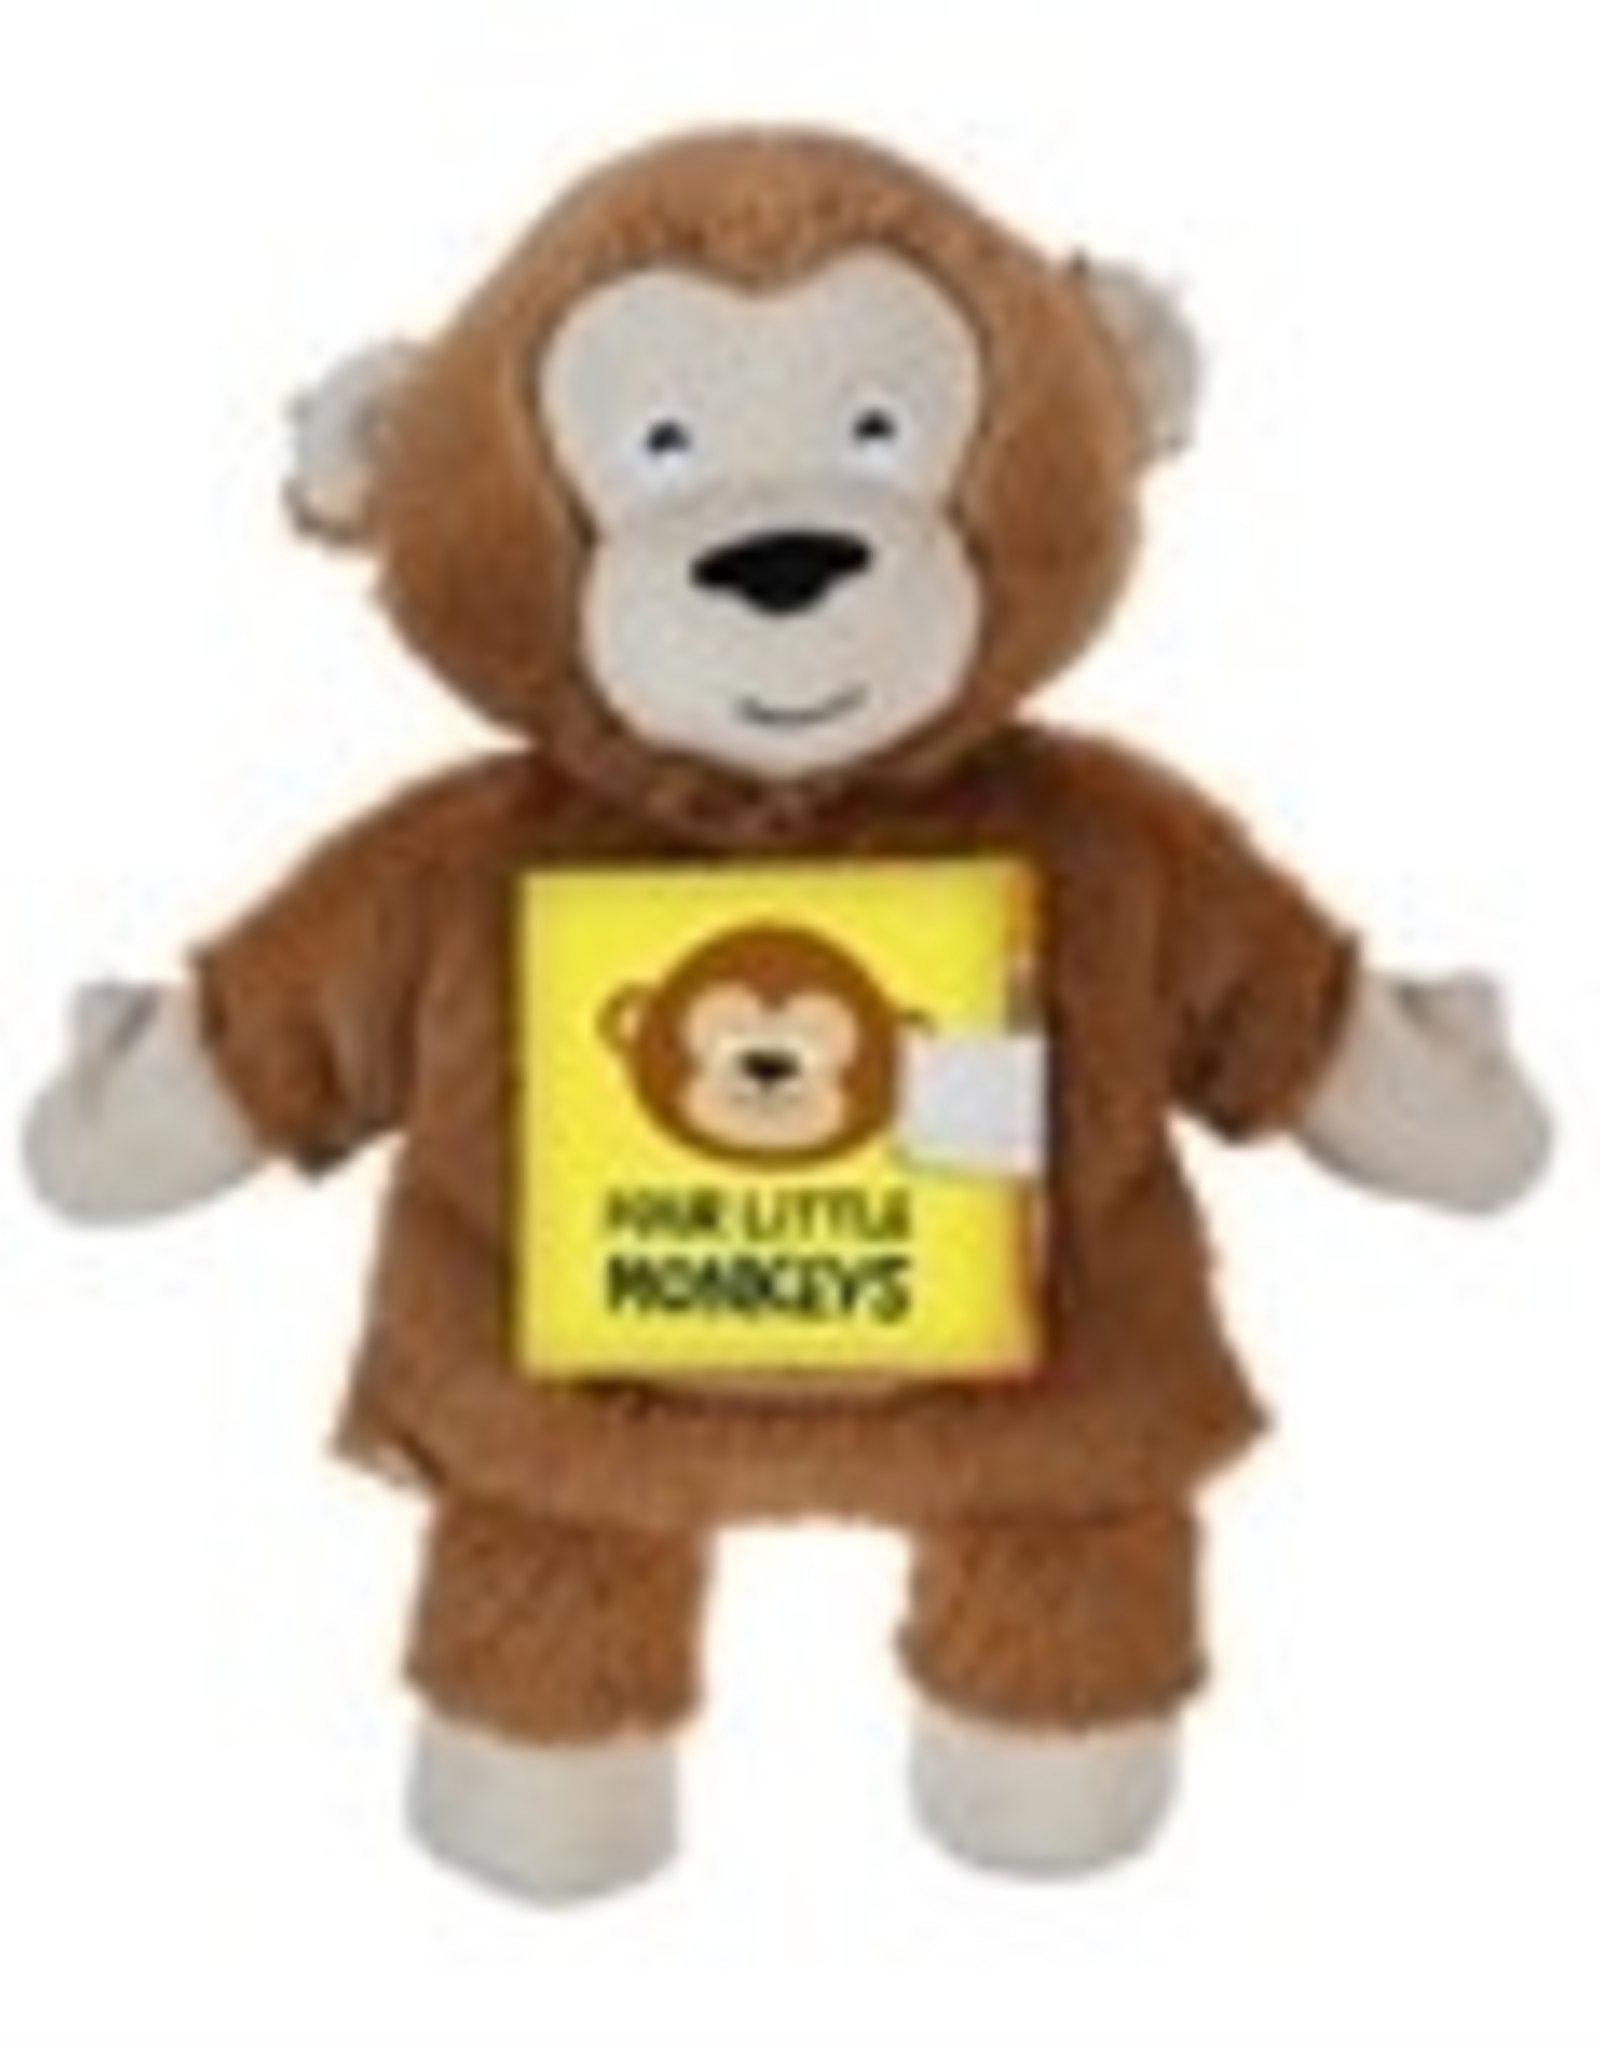 No More Monkeys Storybook and Hand Puppet